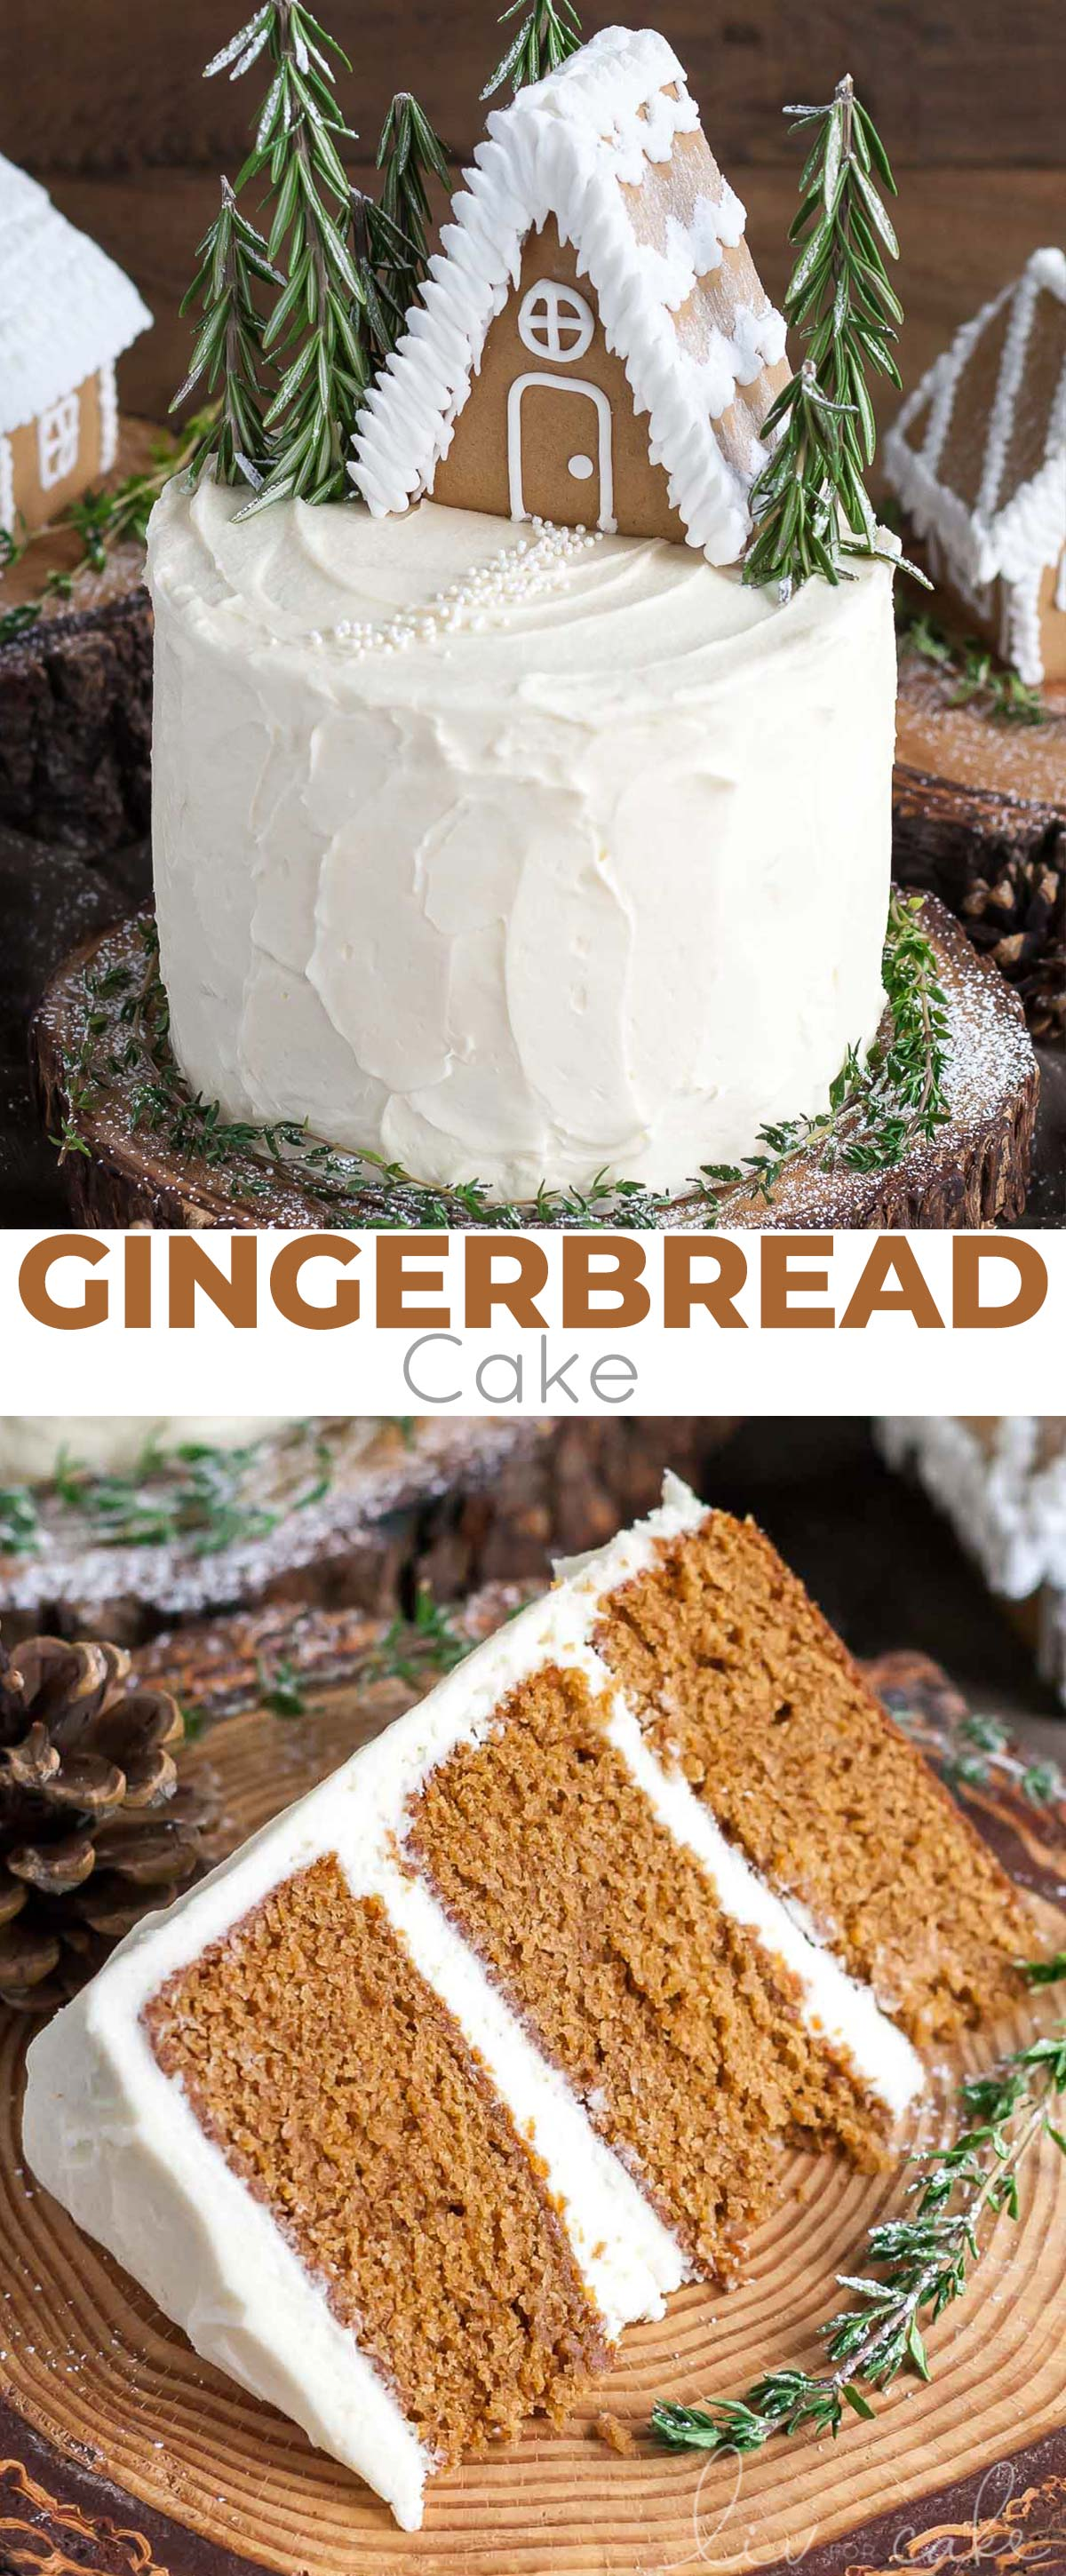 This Gingerbread Cake is perfect for the holidays!